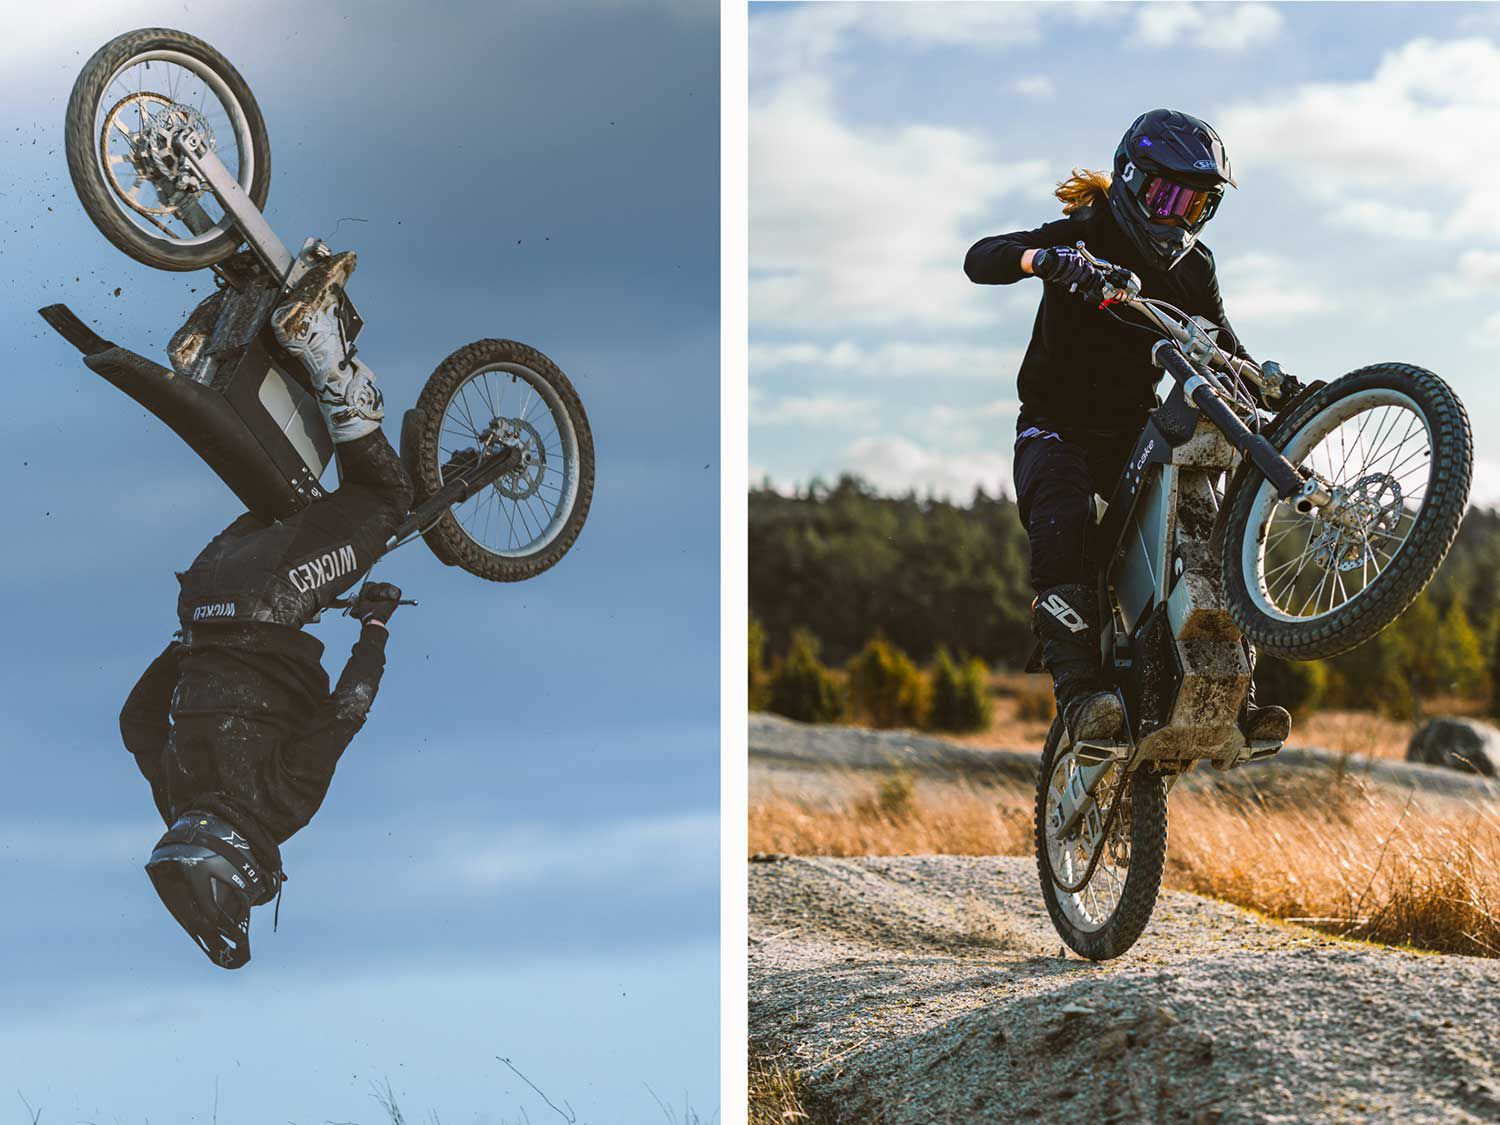 Get air or stay ground bound (sort of).